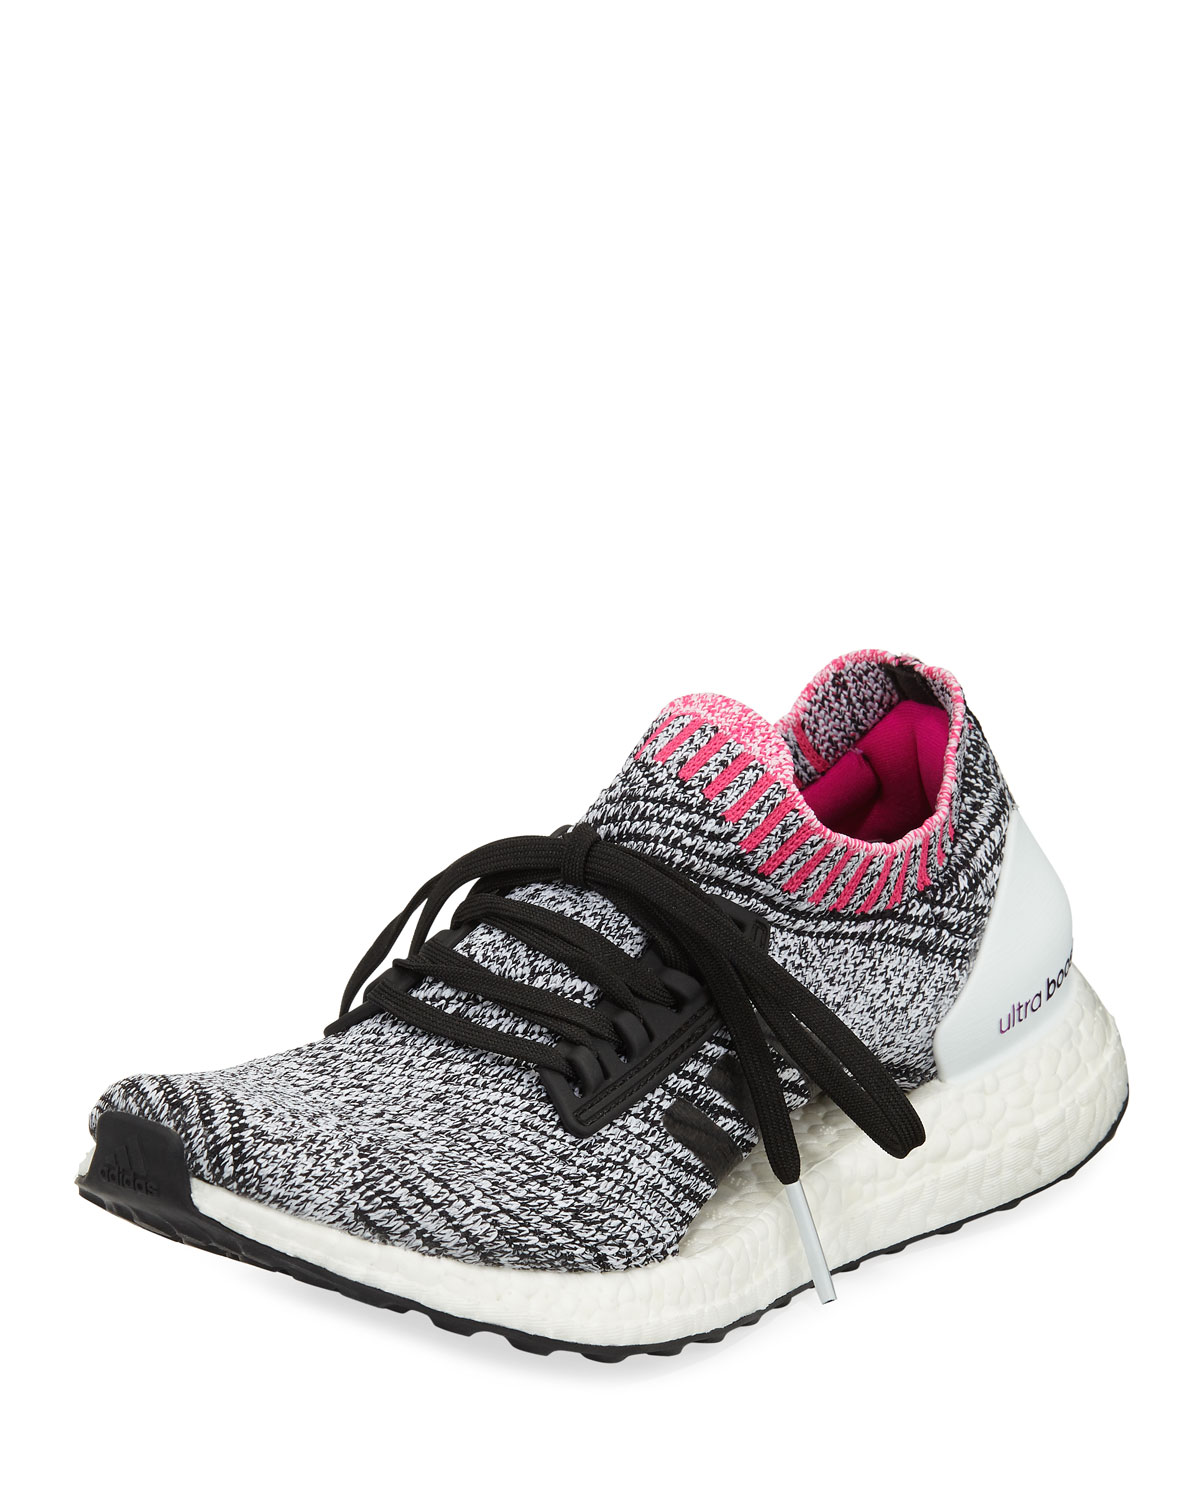 sale retailer 3bf68 20539 Ultra Boost X Knit Sneakers